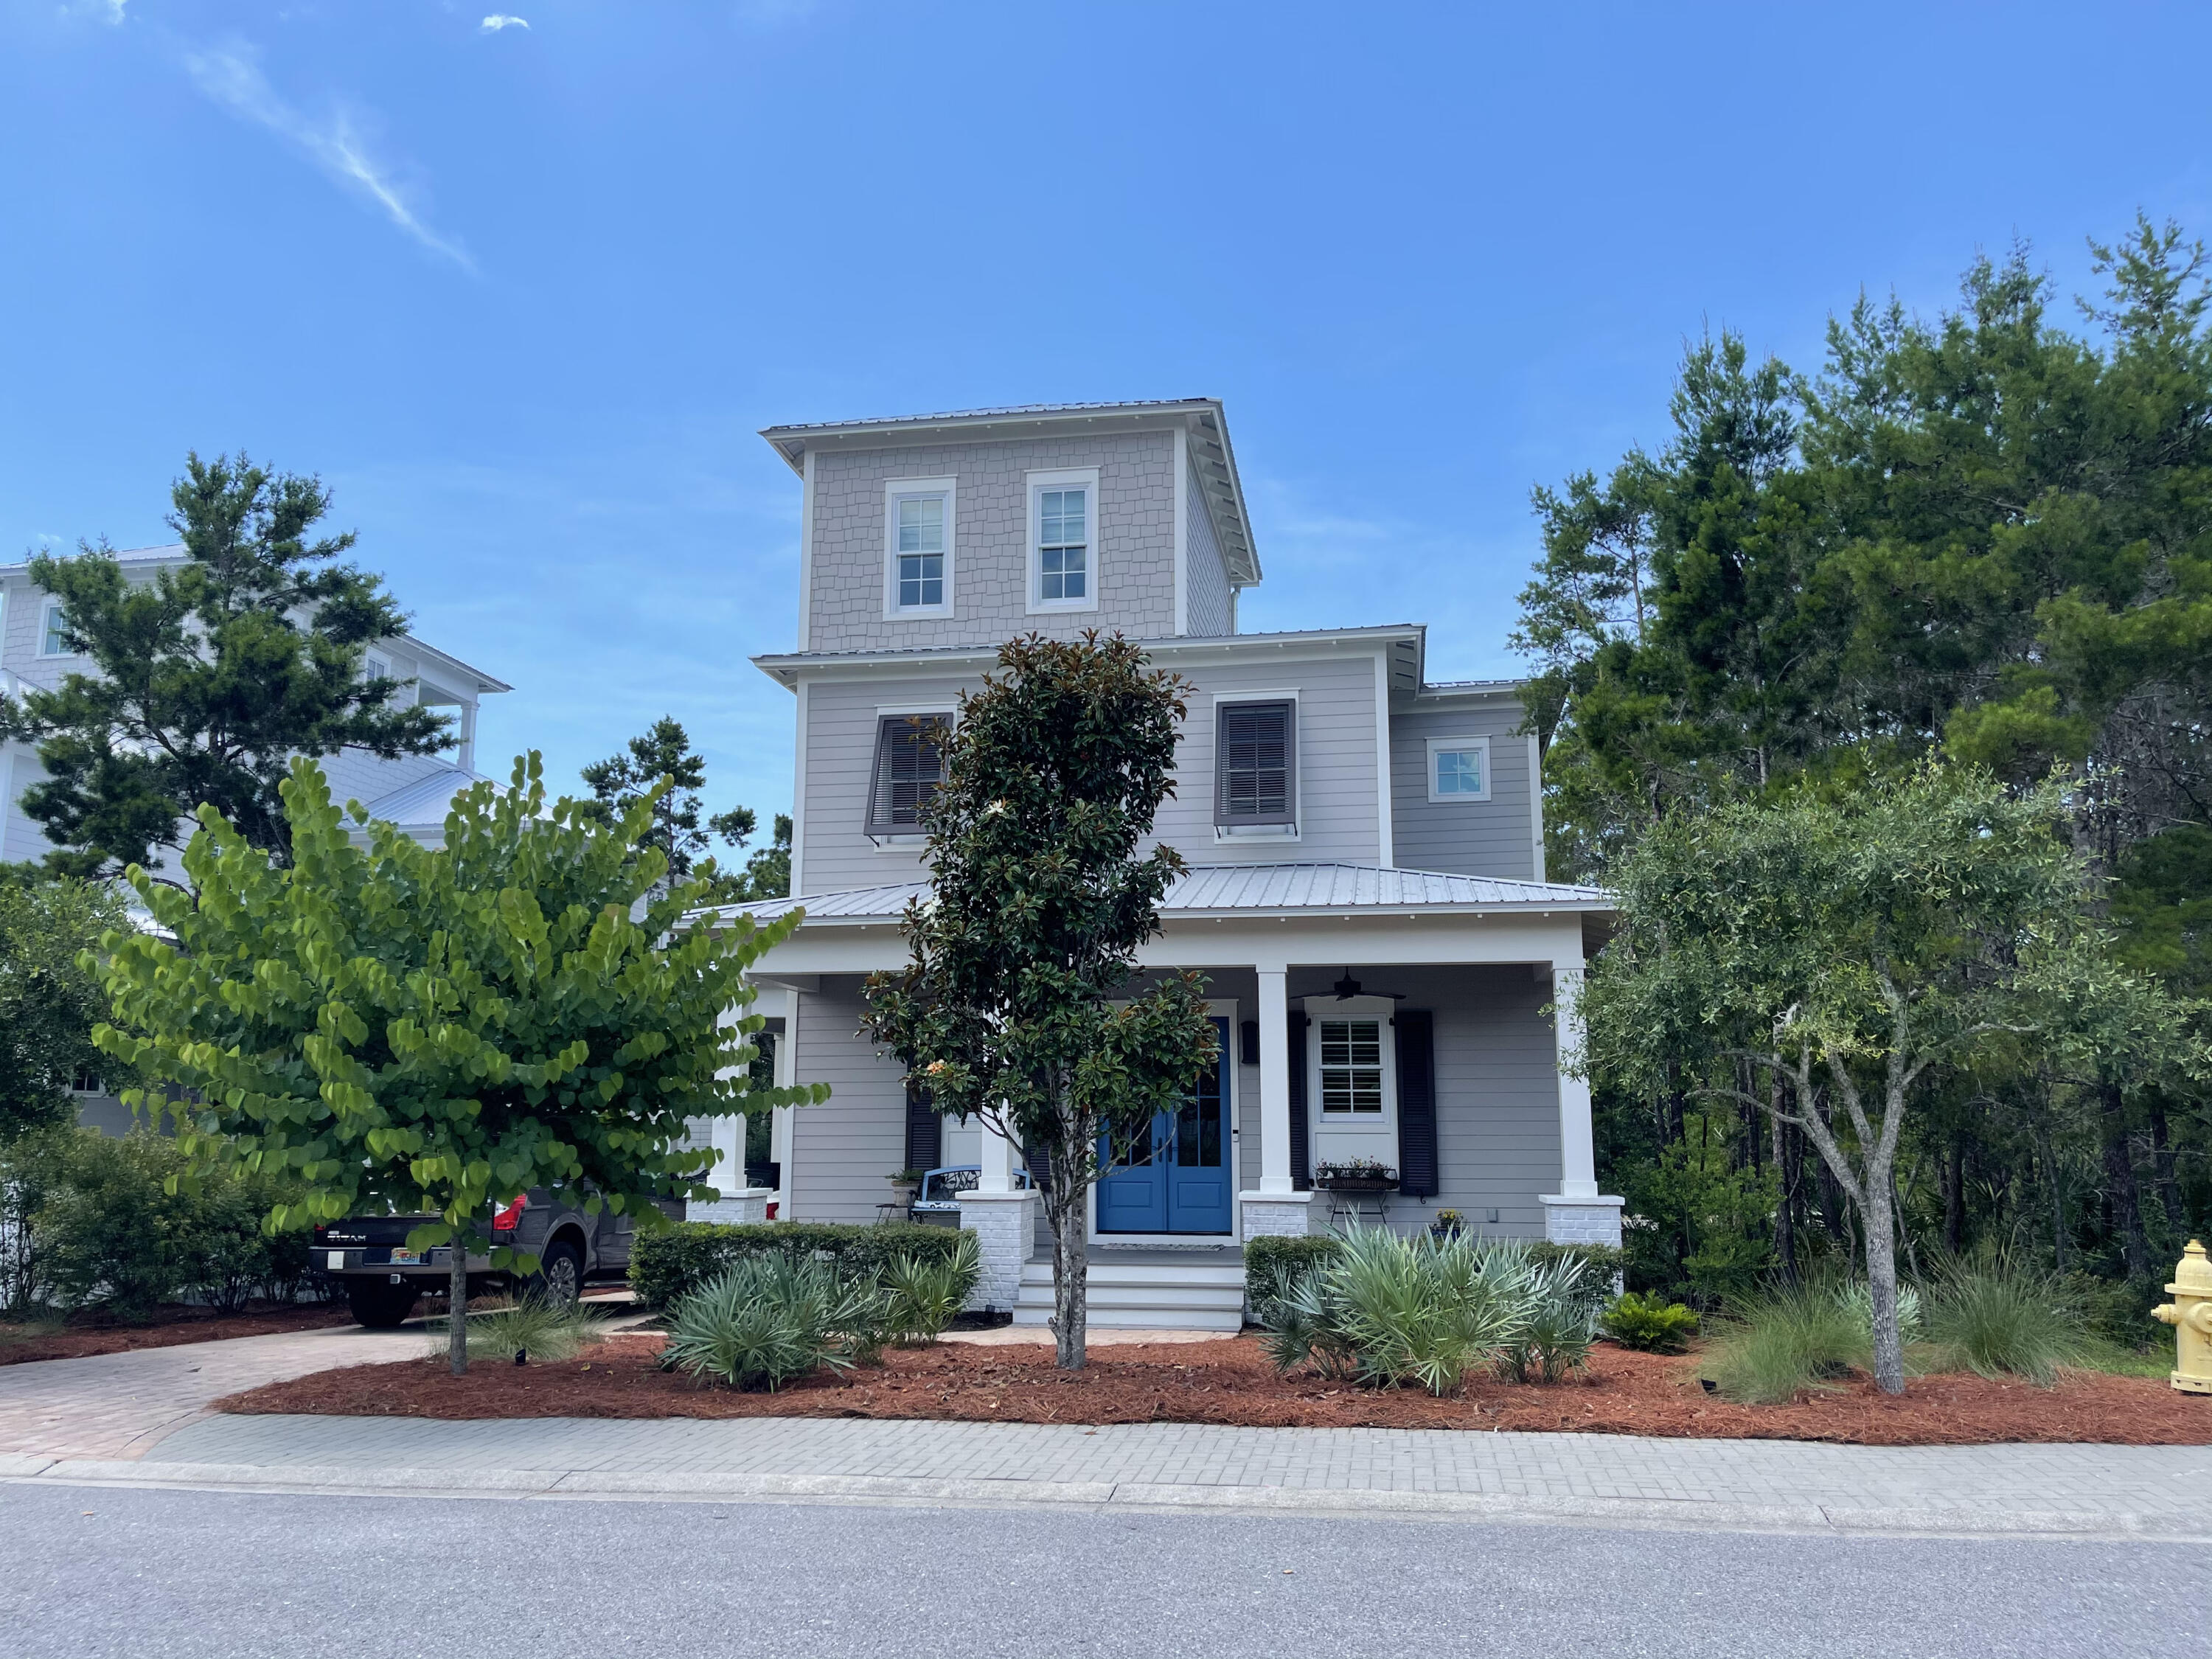 Another beautiful home in The Preserve at Grayton Beach.  Fully furnished w few exceptions. A custom home with hardwood flooring throughout with exception to carpet in the guest bedrooms & tiled bathrooms & 3rd floor tower room with wet-bar.  Entering into the home, this open floor plan with custom built-in wall unit, shiplap accent wall, solid wood doors,  custom cabinets throughout, gourmet kitchen with gas cooktop, separate wall unit for oven (could be used as a double oven) and wall unit microwave.  Kitchen counter tops & separate island are quartz as well as all the bathroom vanities.  The first floor has a master suite with sitting area, walk-in tiled surround shower, separate water closet and double vanity, laundry room with sink, 1/2 bath and a screened-in porch with gas fireplace An under the stairs closet, could be used as an owner's closet.  Walking up to the second floor, there is a large landing that could be converted into a bunk room. There are two guest bedrooms with with their own bathroom.  One of the bathrooms has a tub/shower combination with double vanity and the other bathroom has a walk-in shower with double vanity. Each bedroom has a door going out to the deck with a glimmer of the Gulf of Mexico.  Going up to the 3rd floor tower,  there is a 1/2 bath and wet-bar and an open deck with gulf views.  As you walk along the brick paved path on the east side of the home, there is an under the house storage area for your personal items and as you walk to the back of the house, a brick paved patio with a grill.  There is a gas rinnai for continuous hot water, a gas cooktop and gas fireplace.  So much detail in this beautiful custom built home.